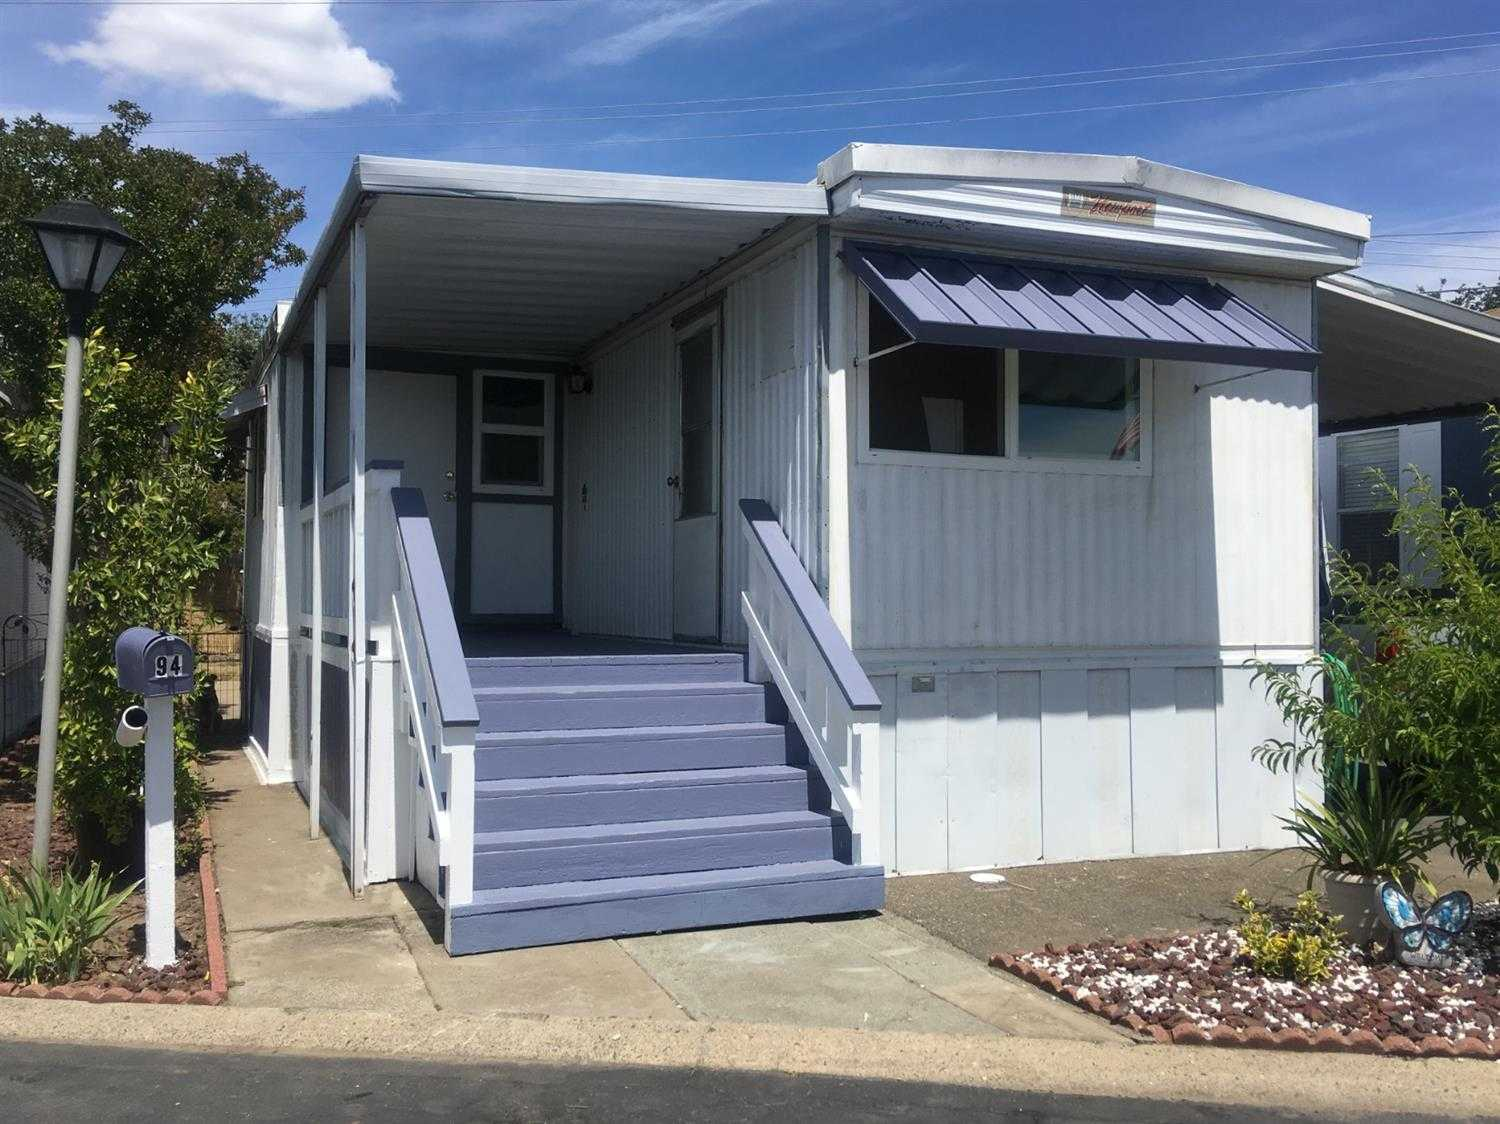 $29,000 - 1Br/1Ba -  for Sale in Rancho Cordova